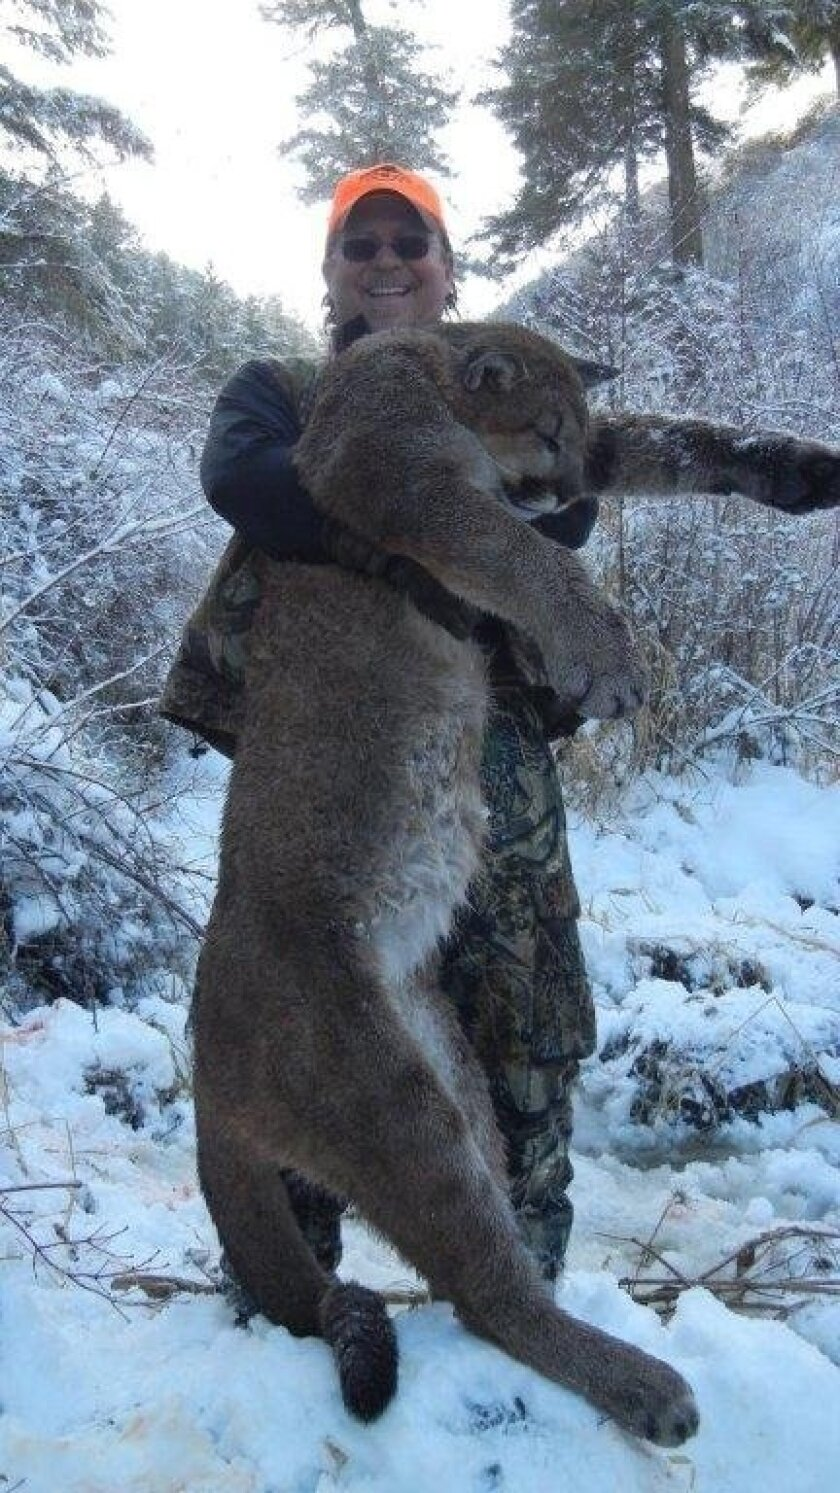 Dan Richards drew heat for posing with this mountain lion he shot legally on a hunt in Idaho. He was voted out Wednesday as president of the Fish and Game Commission in Ventura.